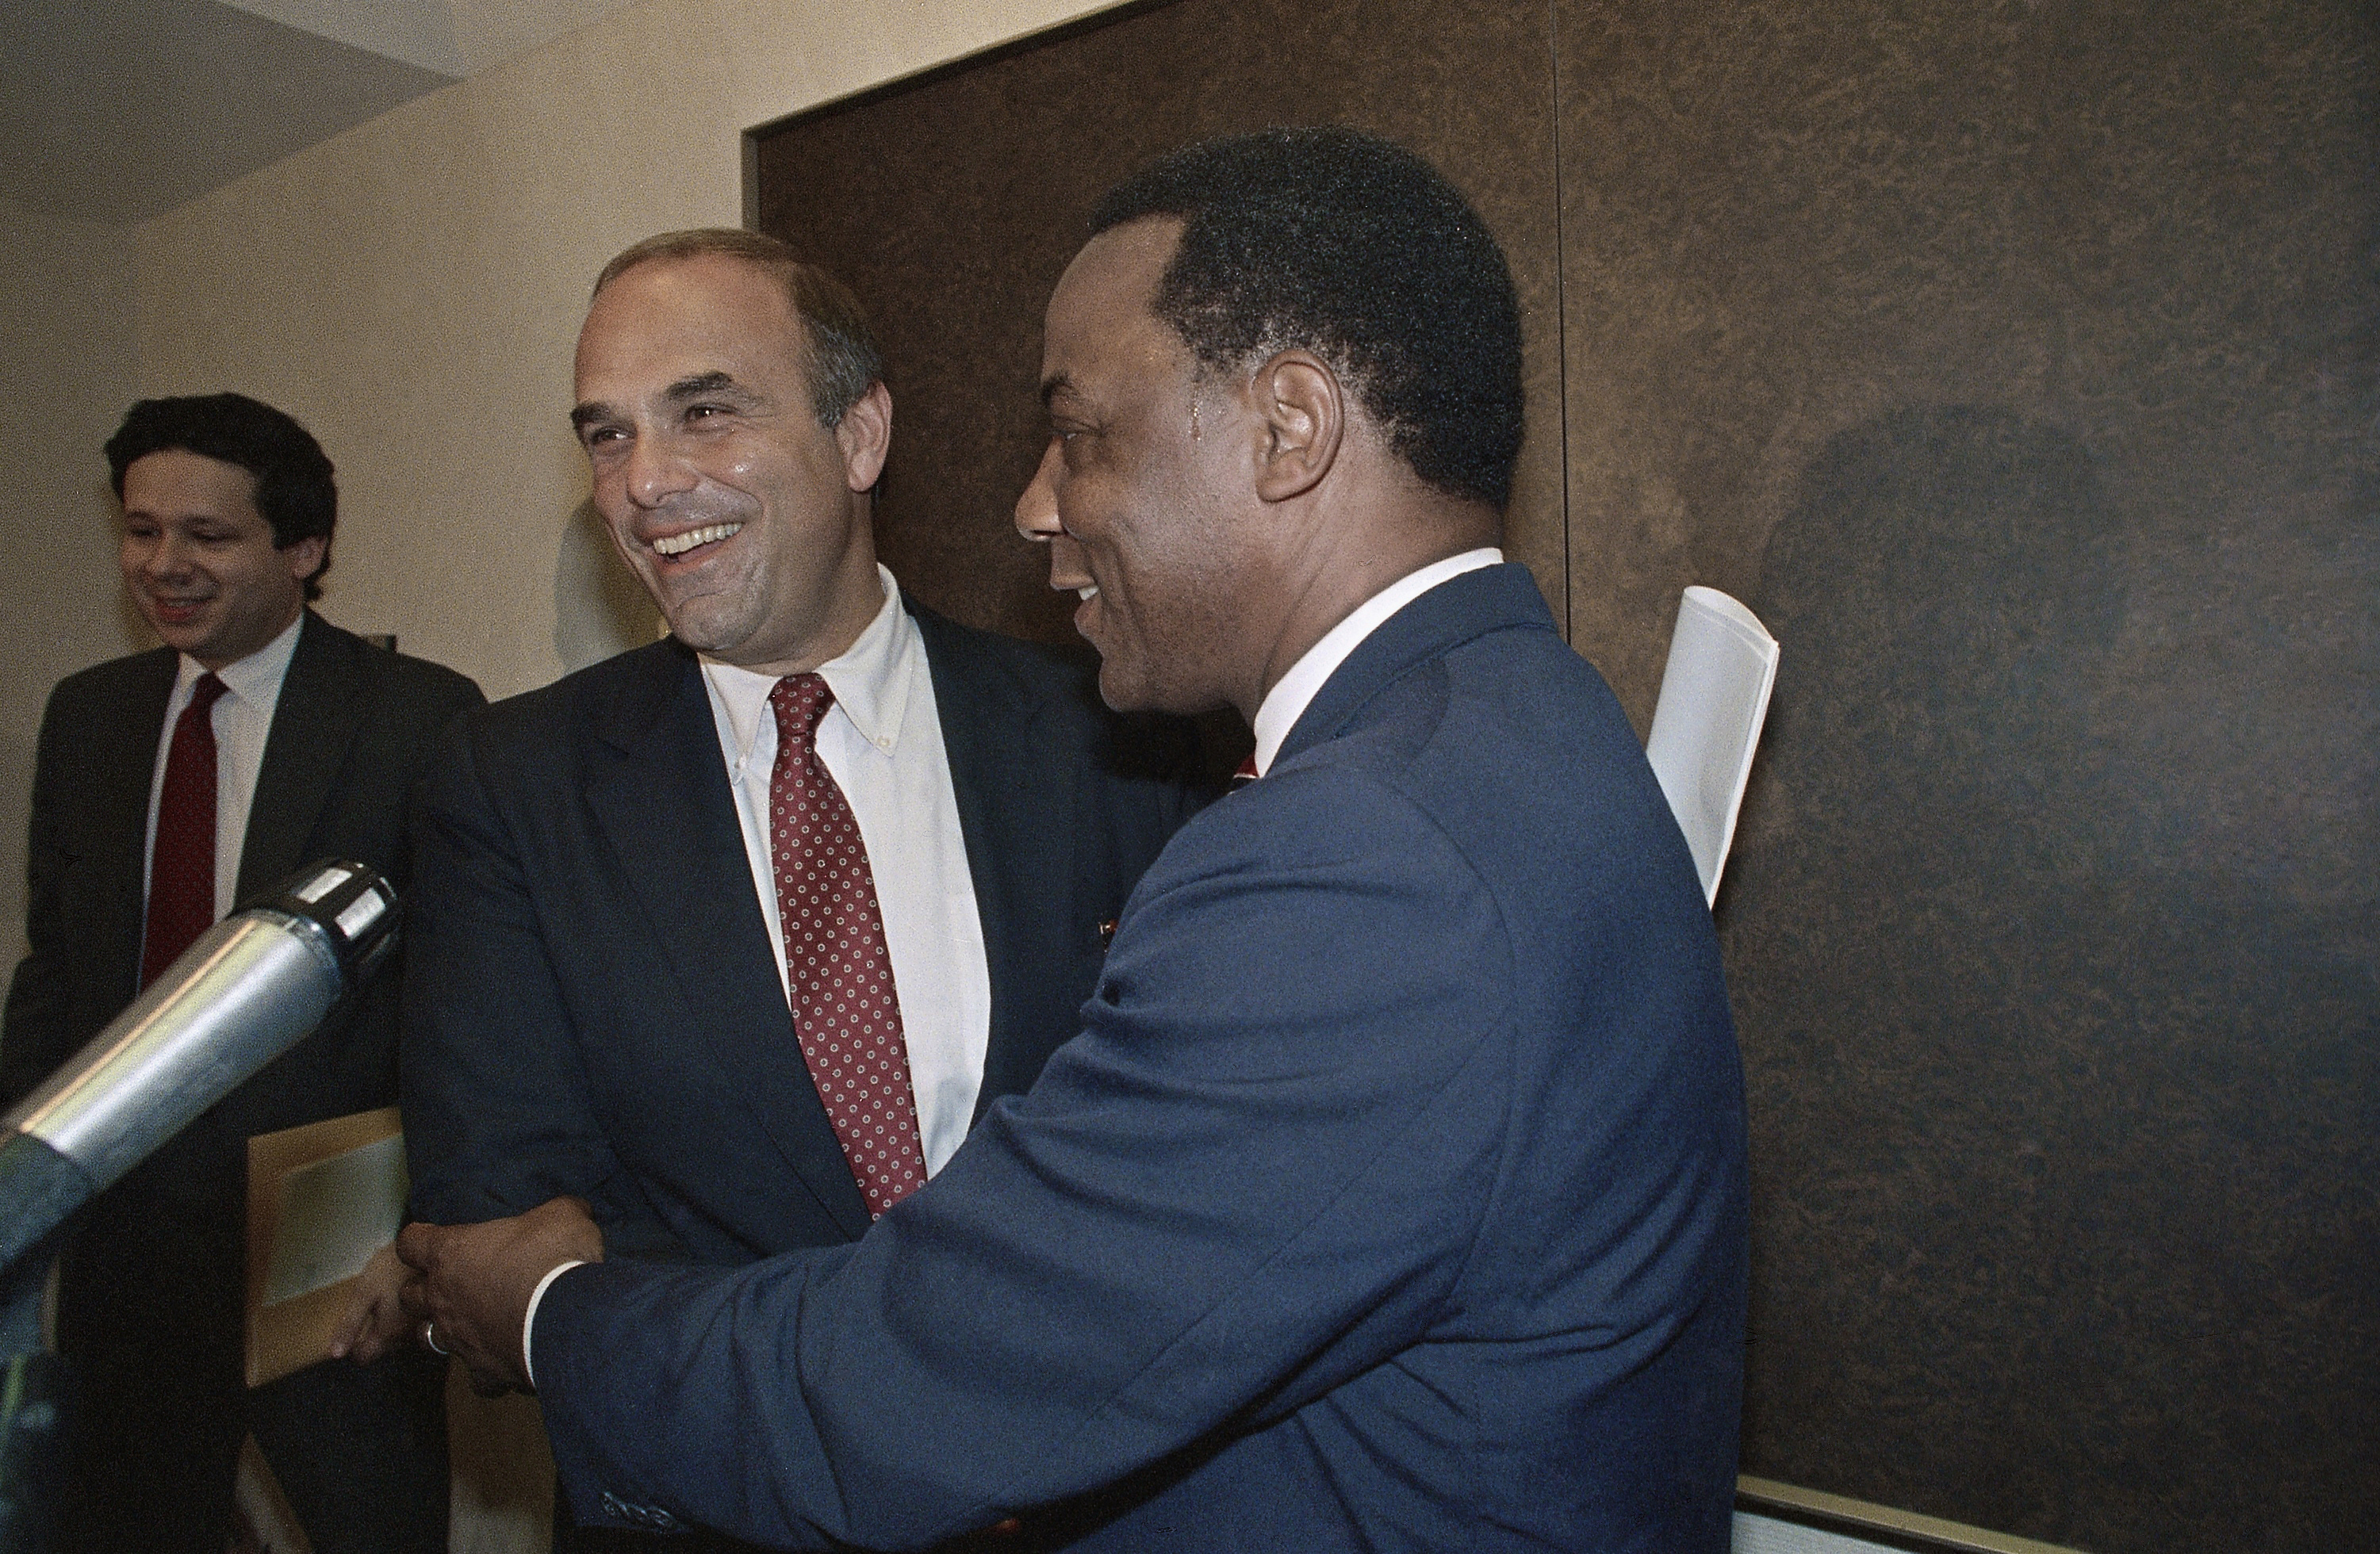 "<div class=""meta image-caption""><div class=""origin-logo origin-image ap""><span>AP</span></div><span class=""caption-text"">Rendell and Philadelphia Mayor W. Wilson Goode share smiles at a press conference in 1987. (ASSOCIATED PRESS)</span></div>"